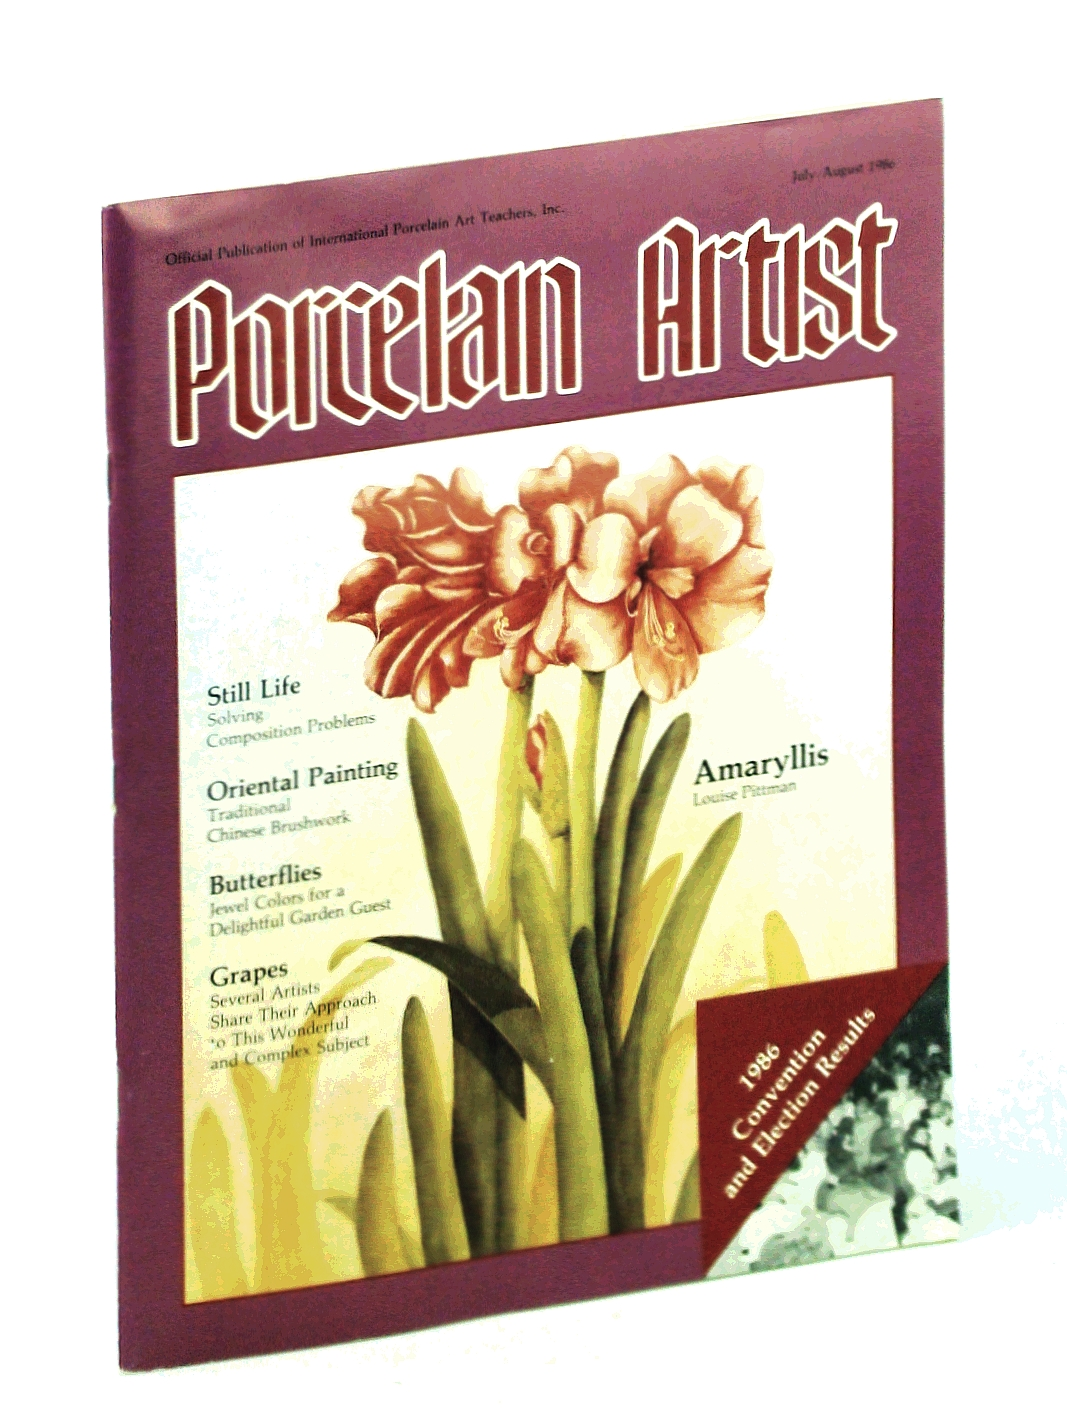 Image for Porcelain Artist [Magazine] July / August [Aug.] 1986: Amaryllis